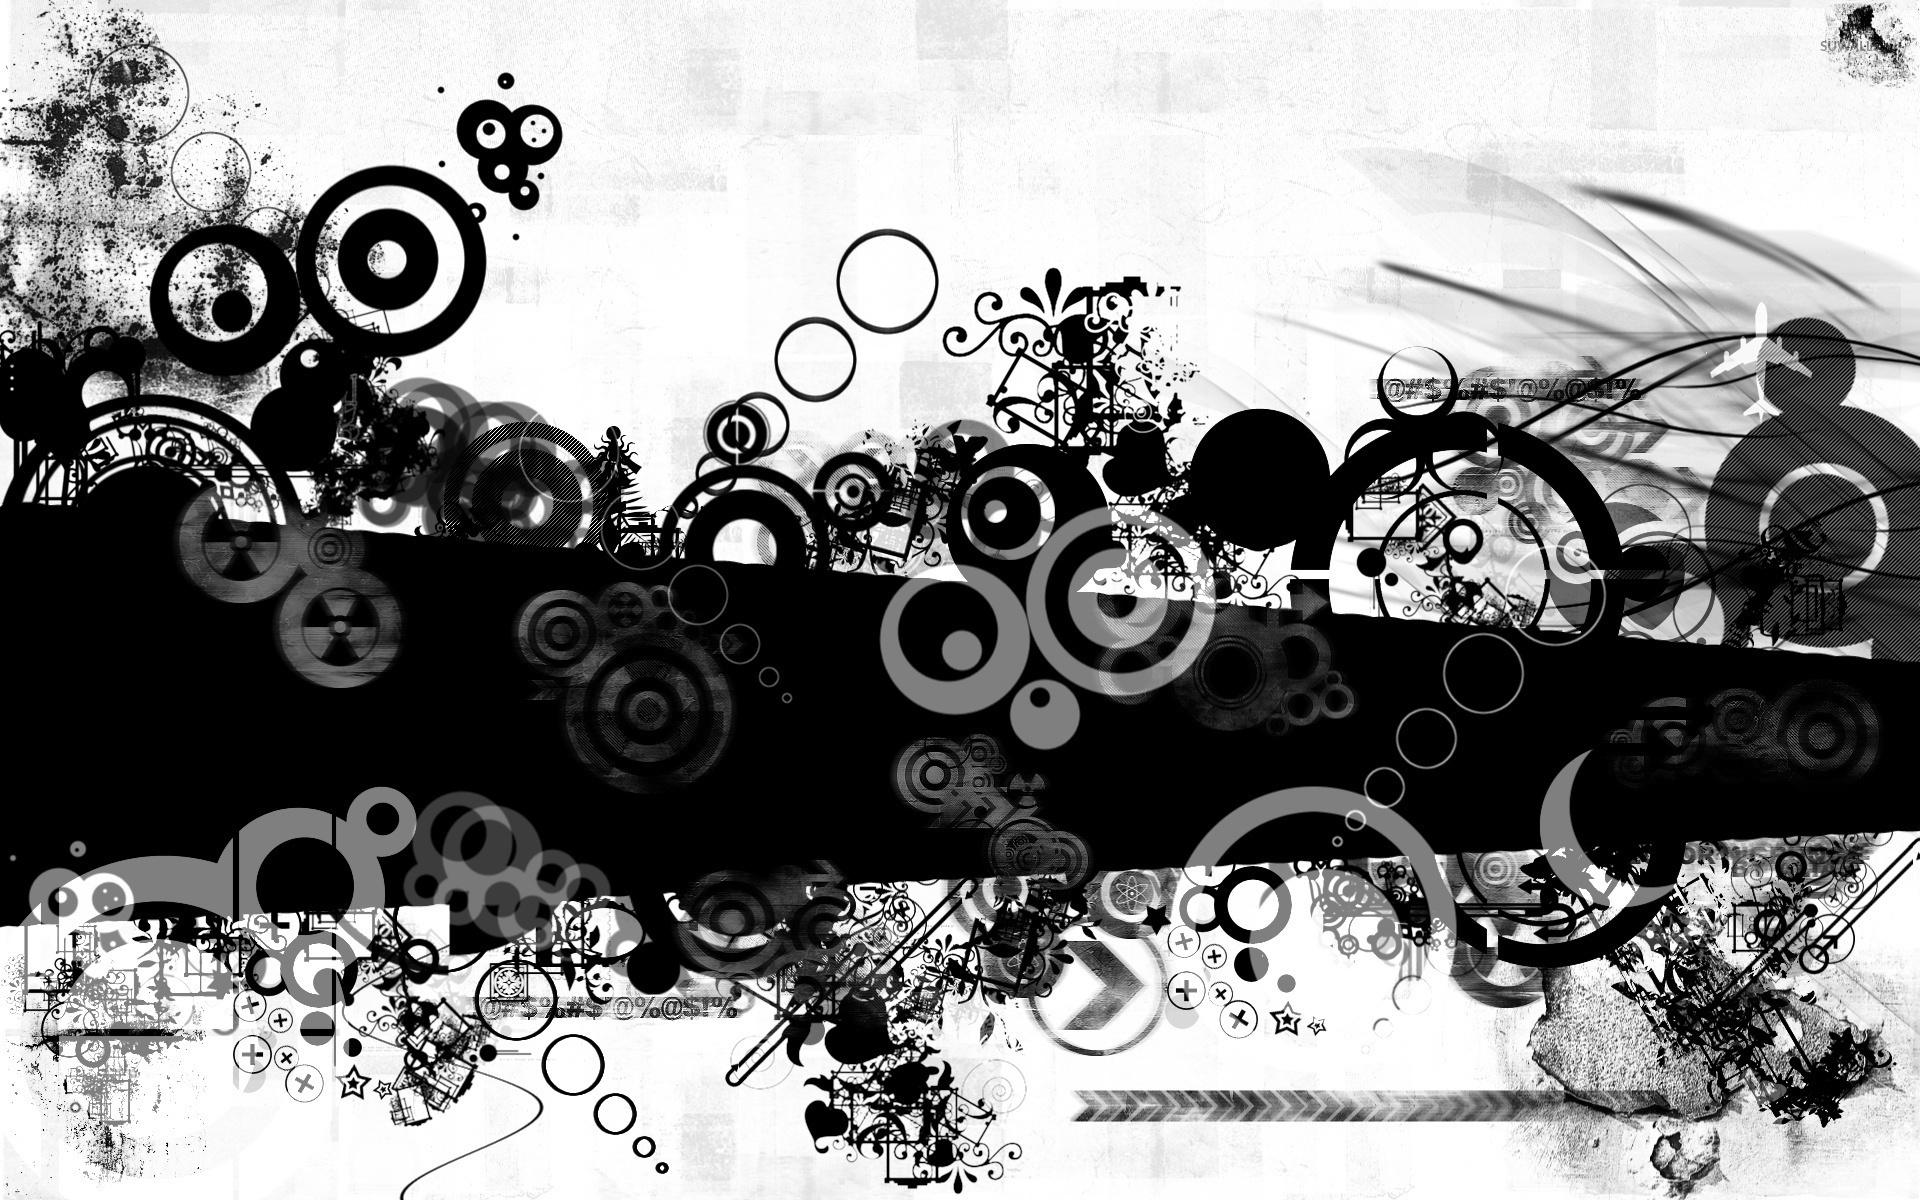 Black and white shapes wallpaper   Digital Art wallpapers   53040 1920x1200